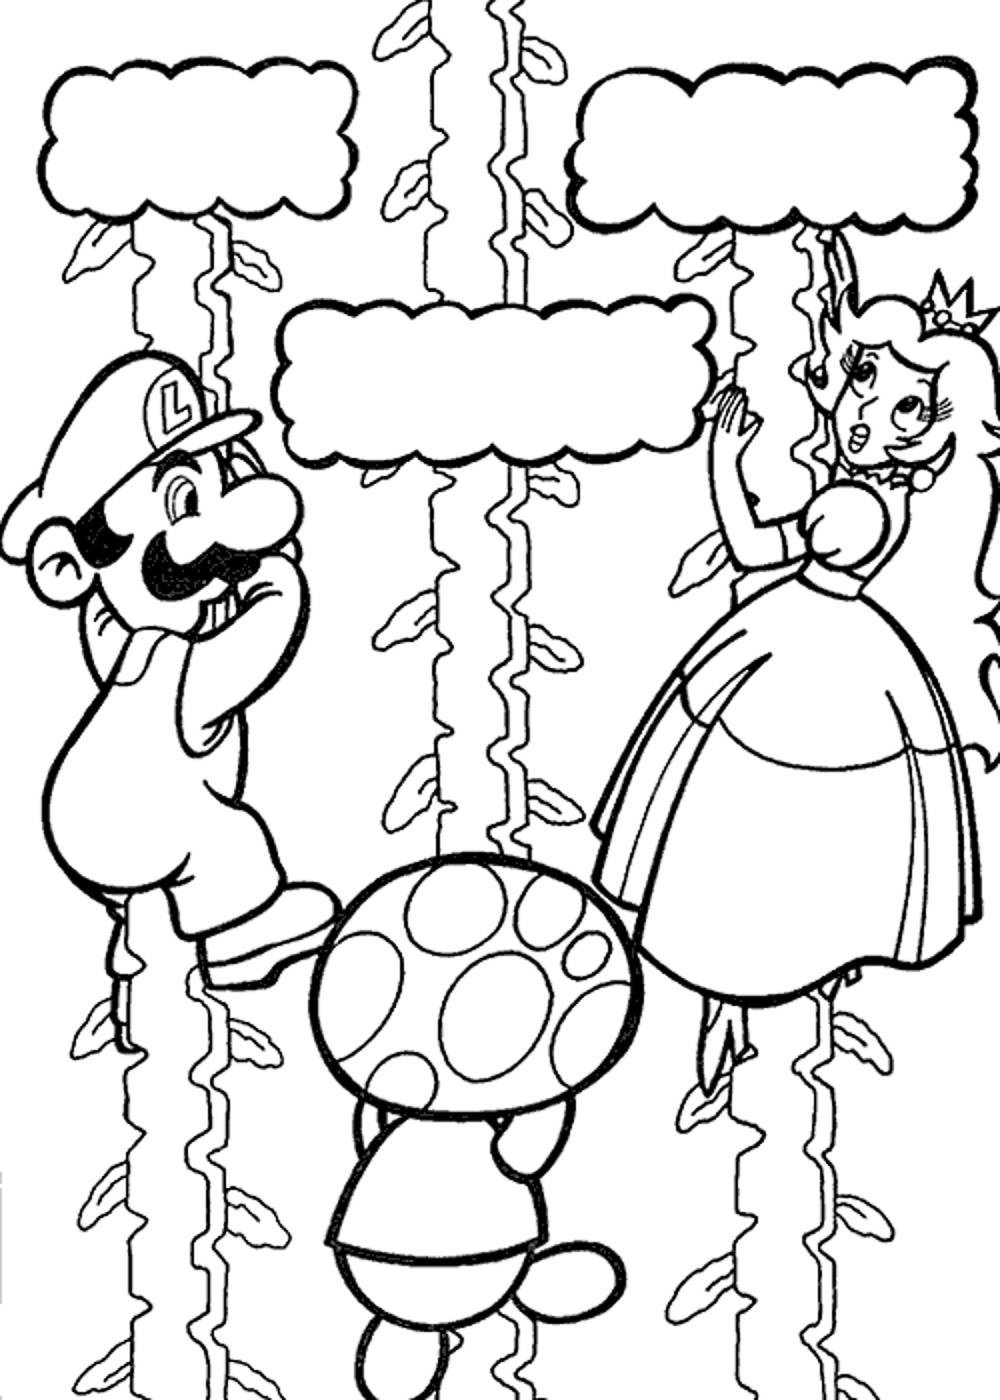 Print & Download Mario Coloring Pages themes Gallery Of Super Mario Coloring Pages Bonnieleepanda Gallery